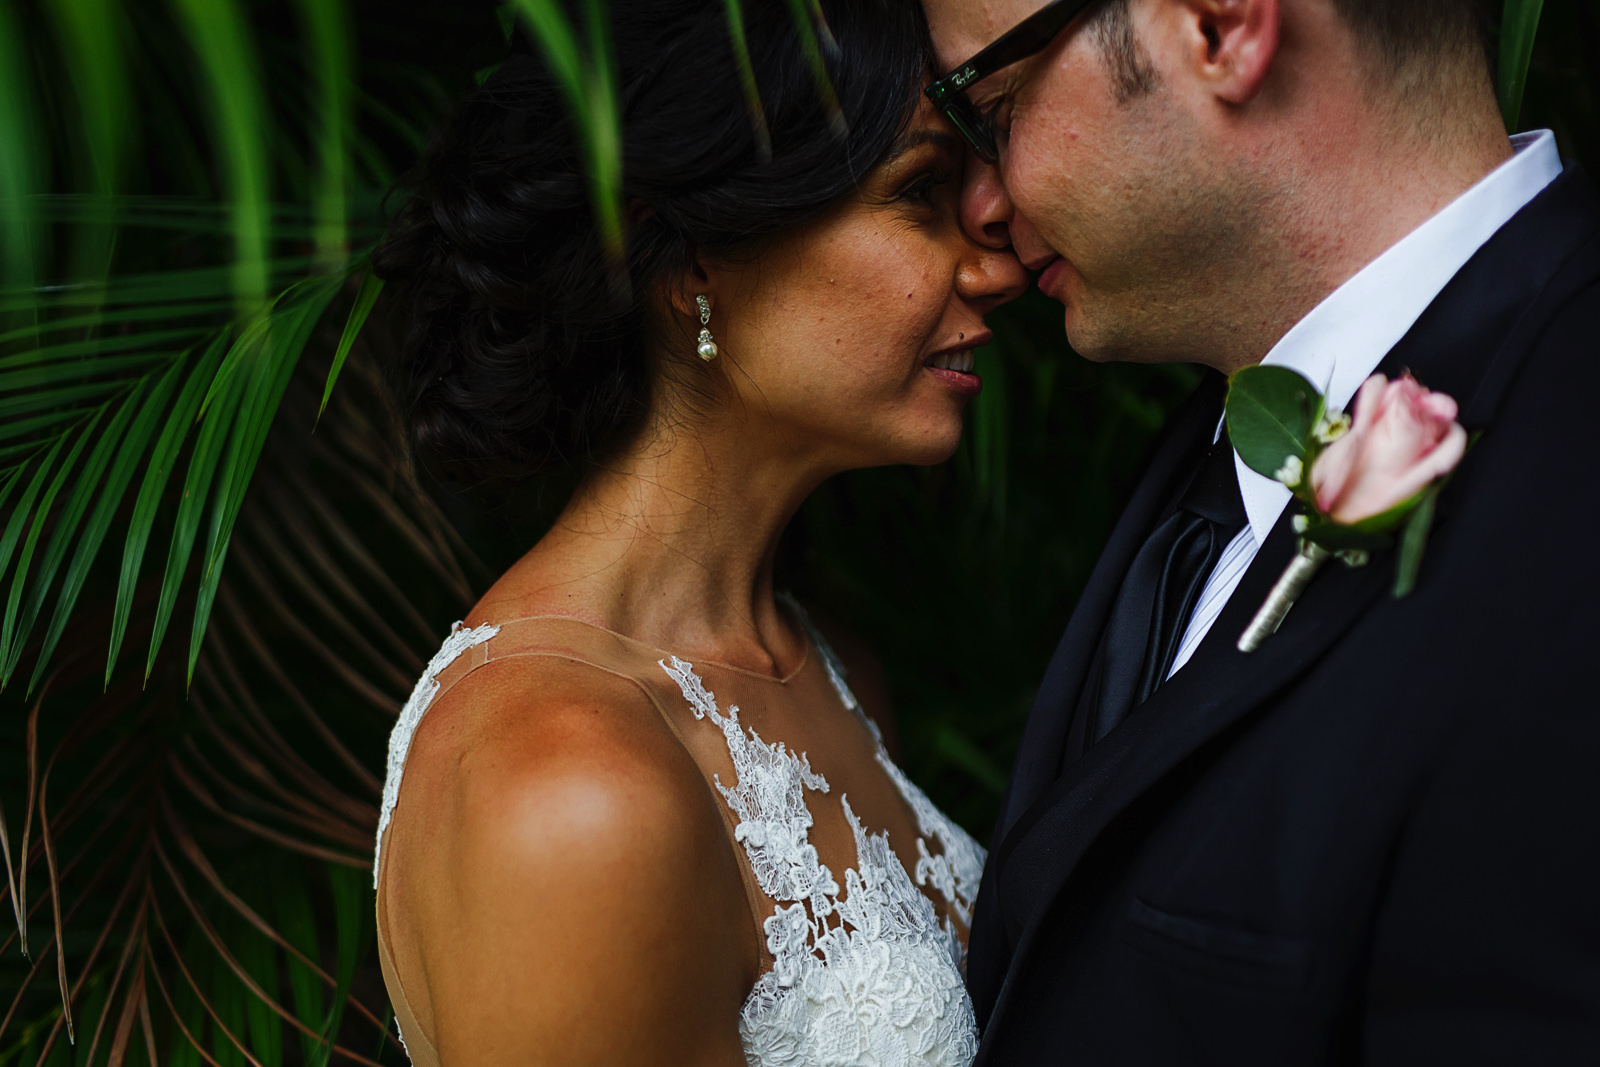 Bride and groom standing close to each other in the middle of palm leaves